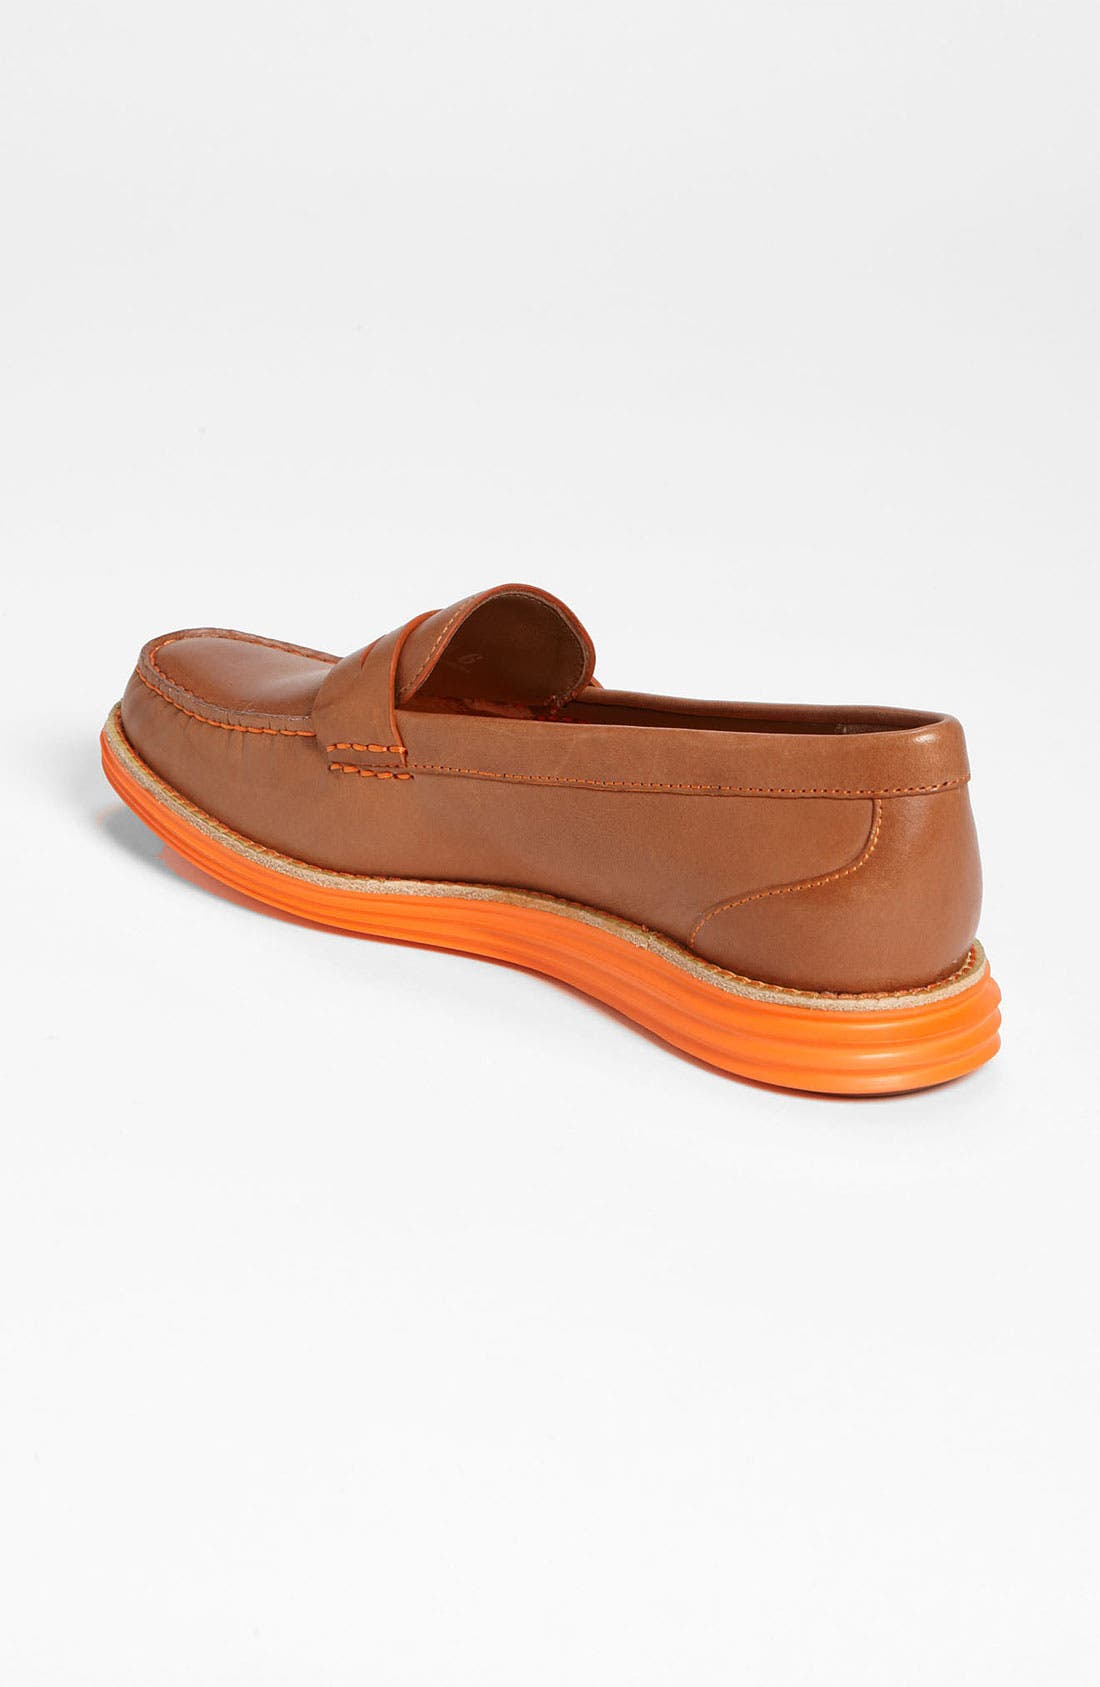 Alternate Image 2  - Cole Haan 'LunarGrand Monroe' Penny Loafer (Women)